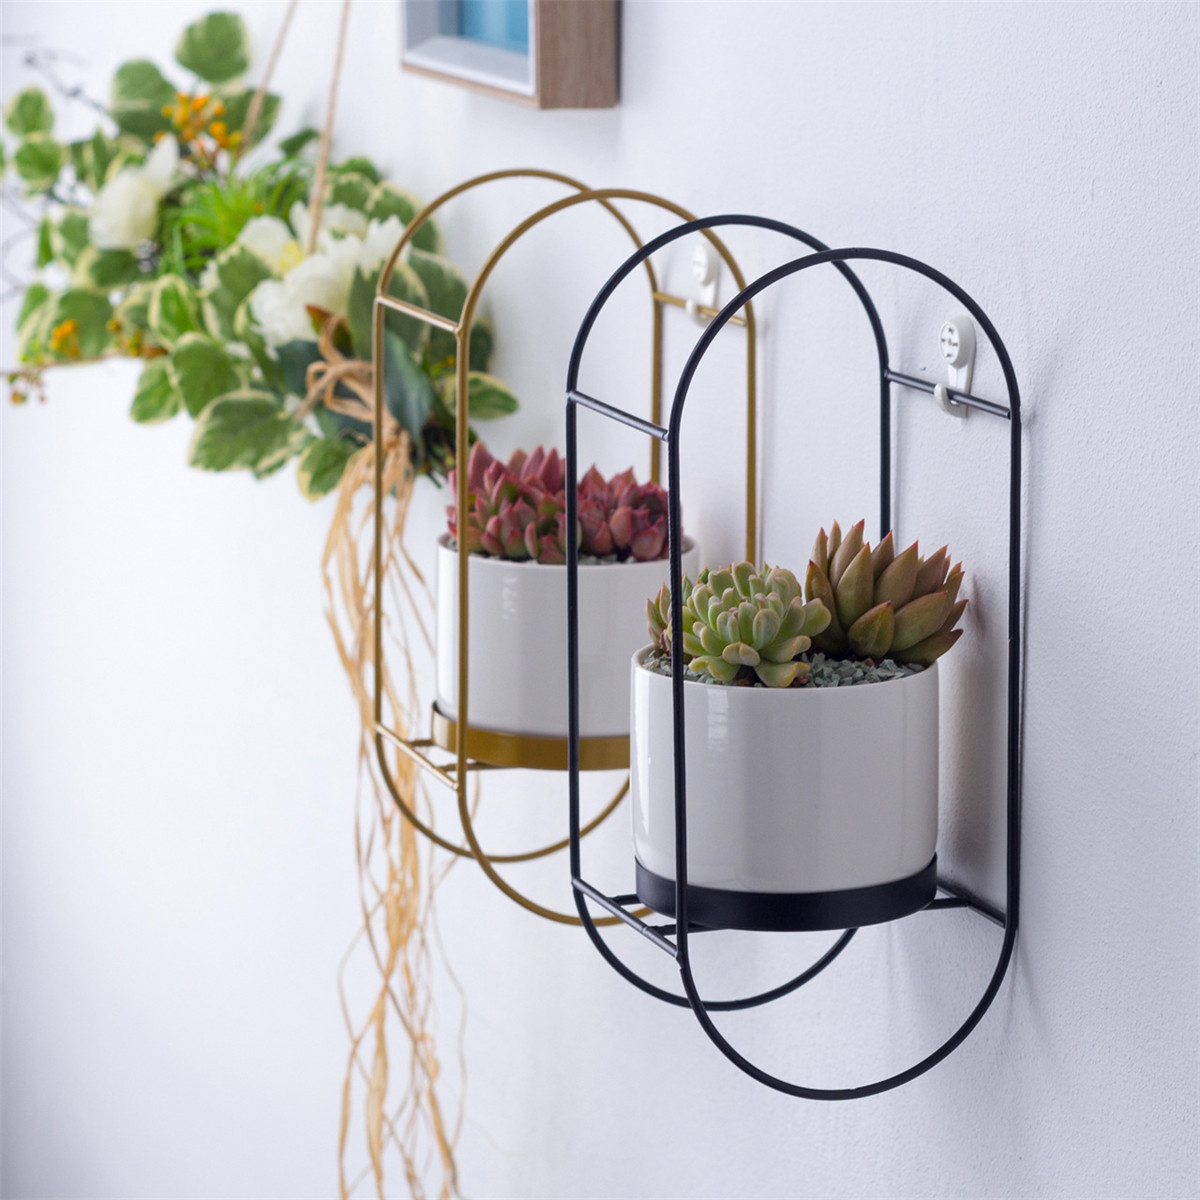 Bakeey Succulent Flower Pot Simple Wall-mounted Oval Iron Frame Rround Combination Ceramic Flower Pot Iron Frame Flower Pot Set